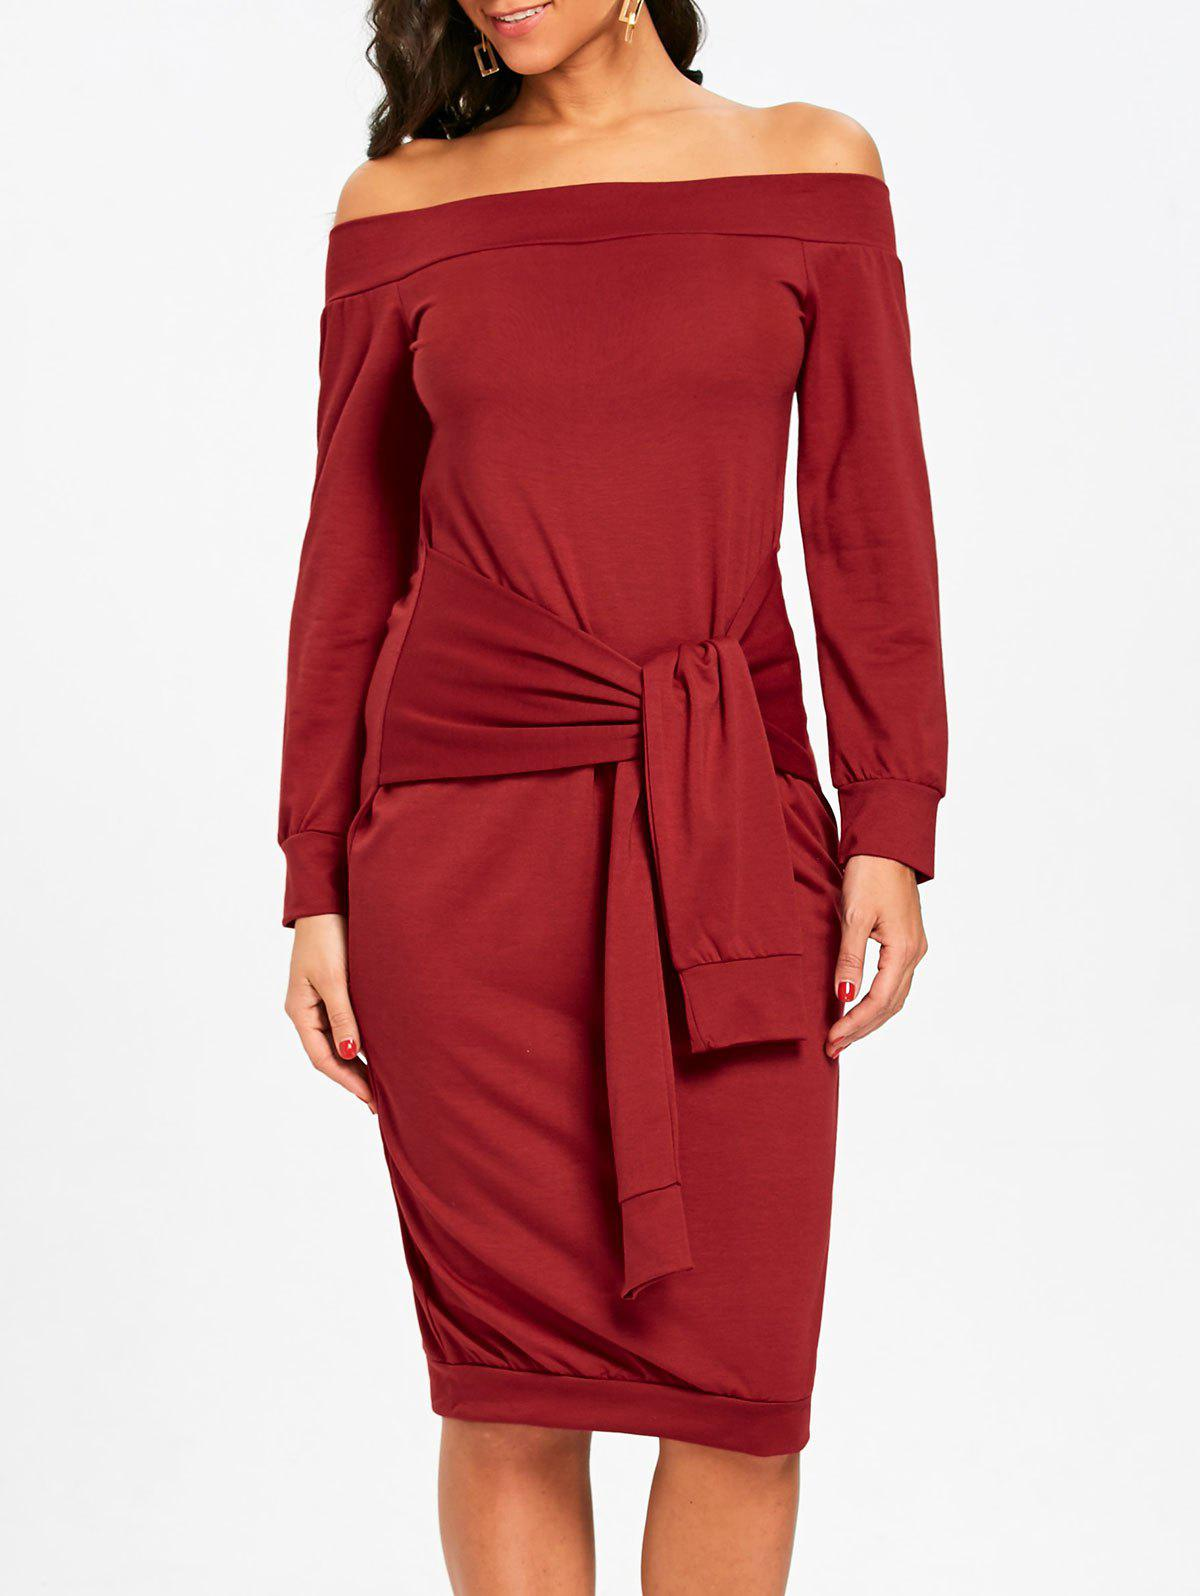 Discount Off The Shoulder Tie Waist Sweatshirt Dress